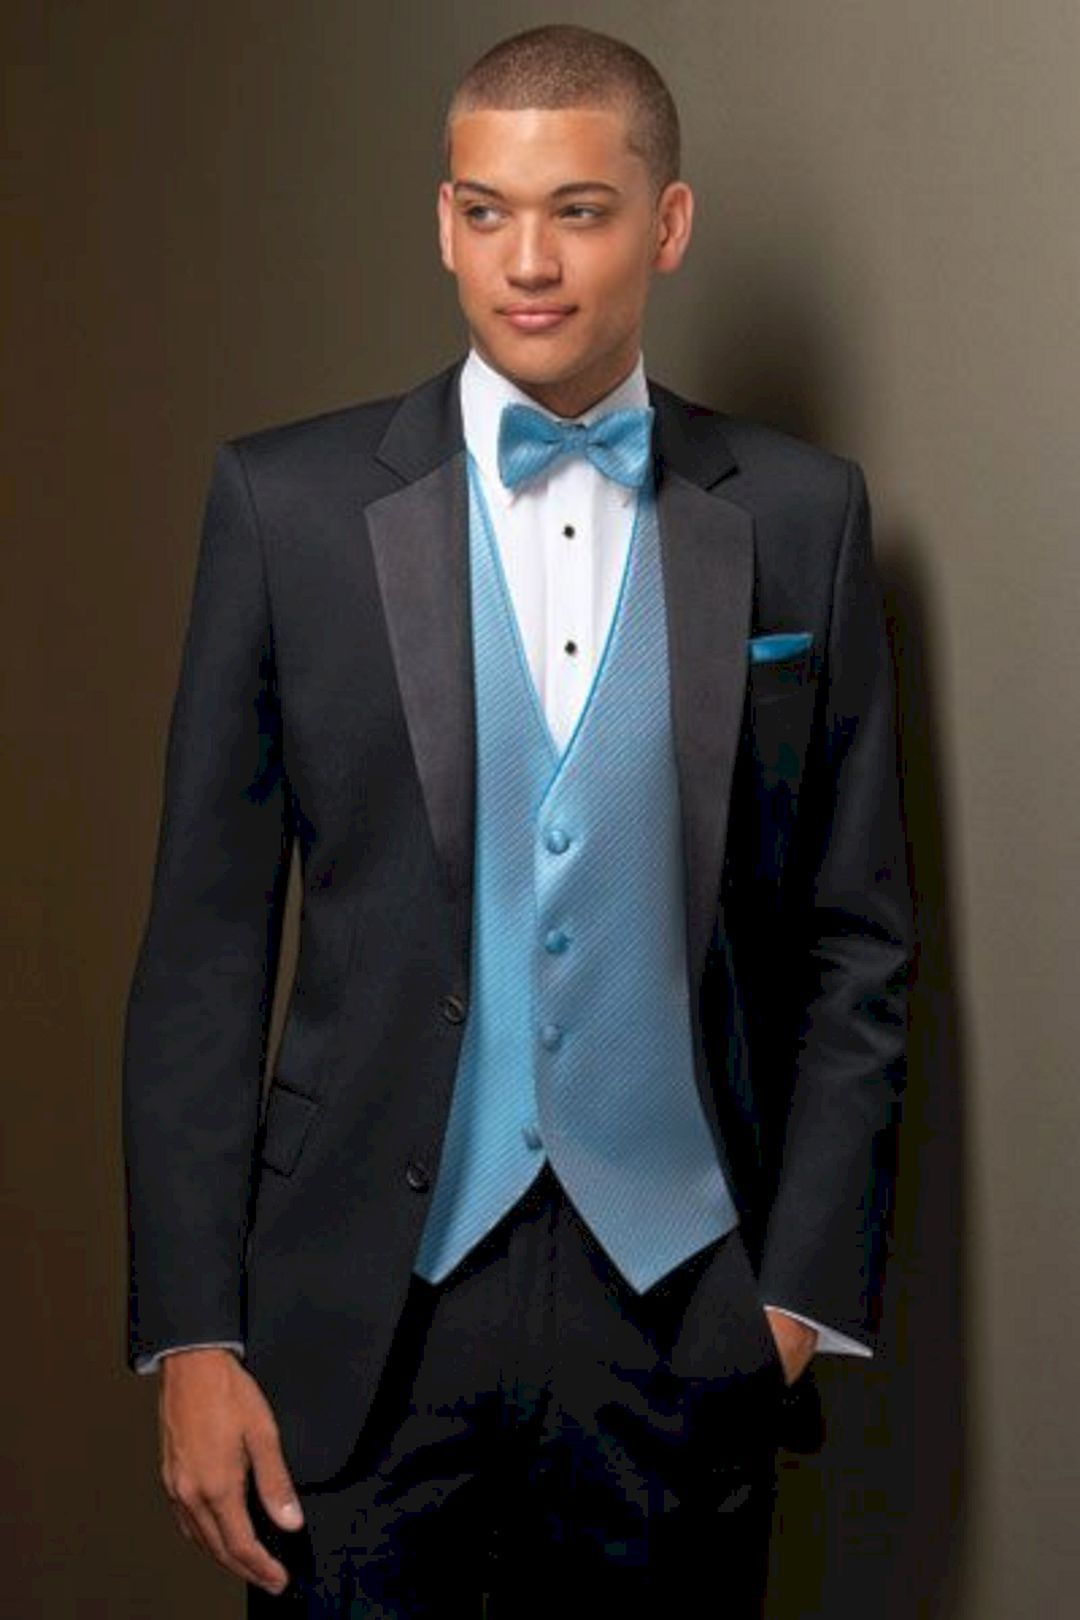 Light Blue Prom Tuxedo with Gray Ties | Pinterest | Grey tie, Prom ...